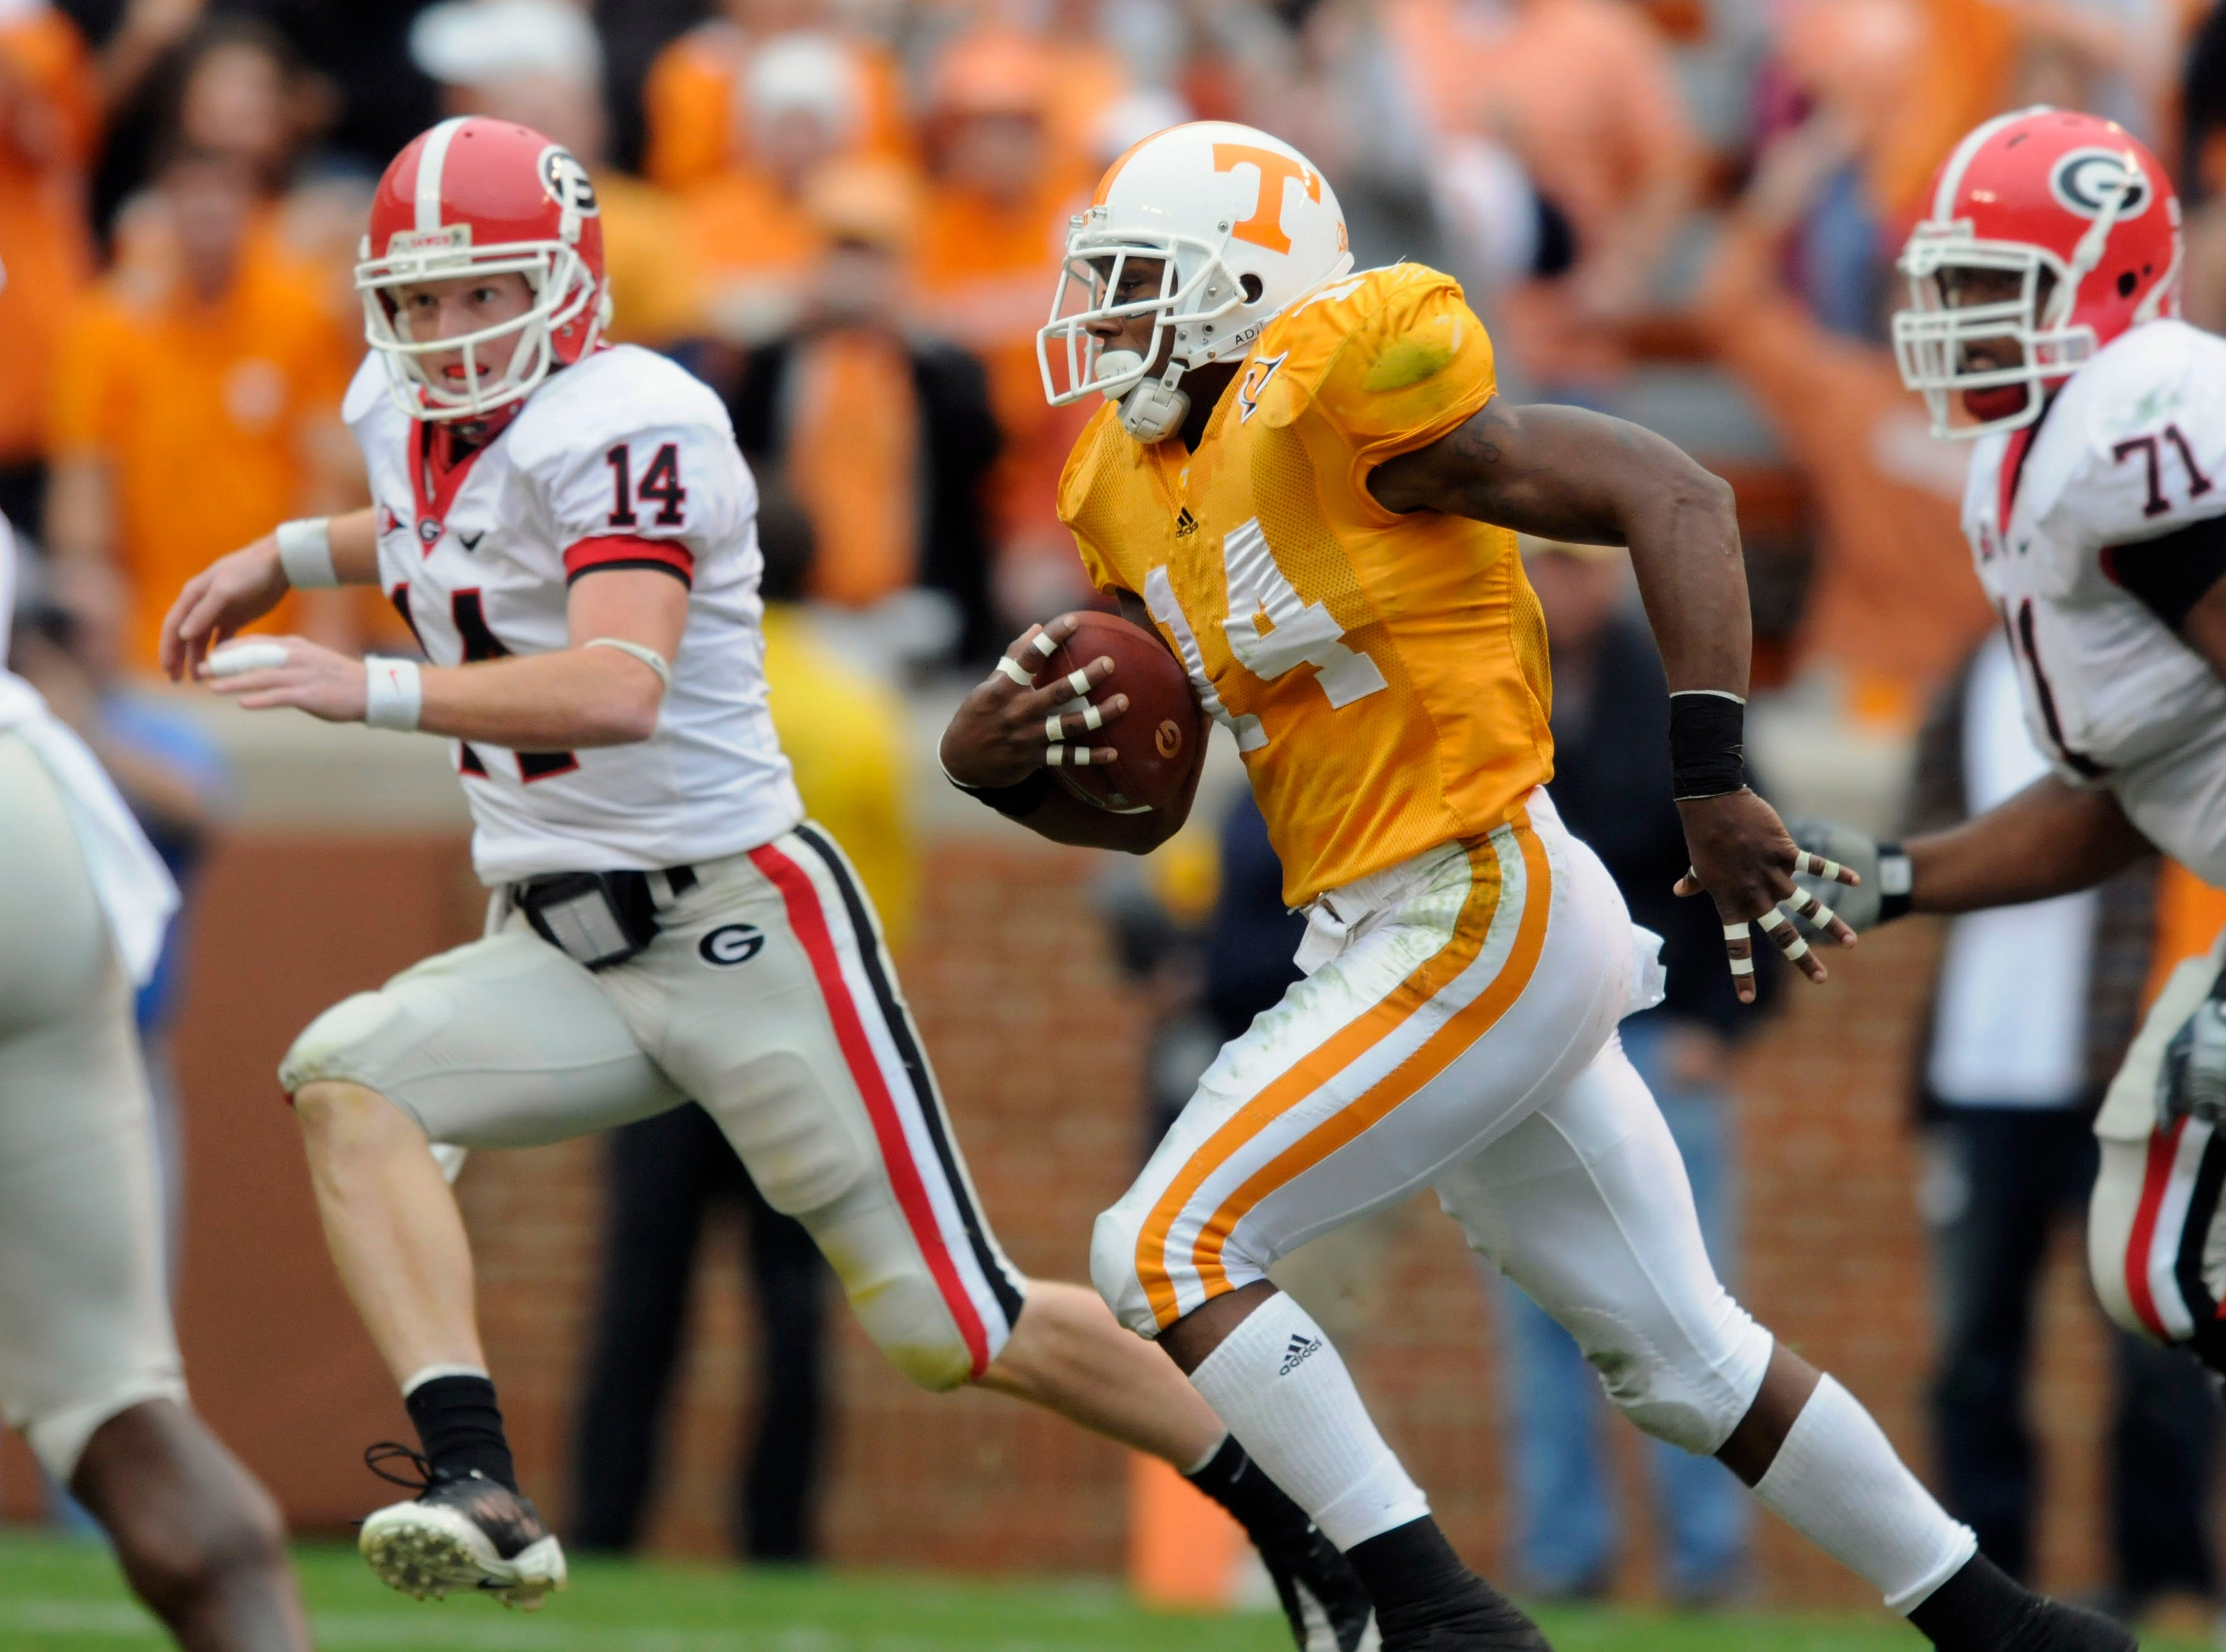 Tennessee cornerback Eric Berry (14) returns an interception/fumble return 46-yards with Georgia quarterback Joe Cox (14) and offensive tackle Cordy Glenn (71) in pursuit on Saturday, Oct. 10, 2009 at Neyland Stadium.Michael Patrick / Knoxville News Sentinel